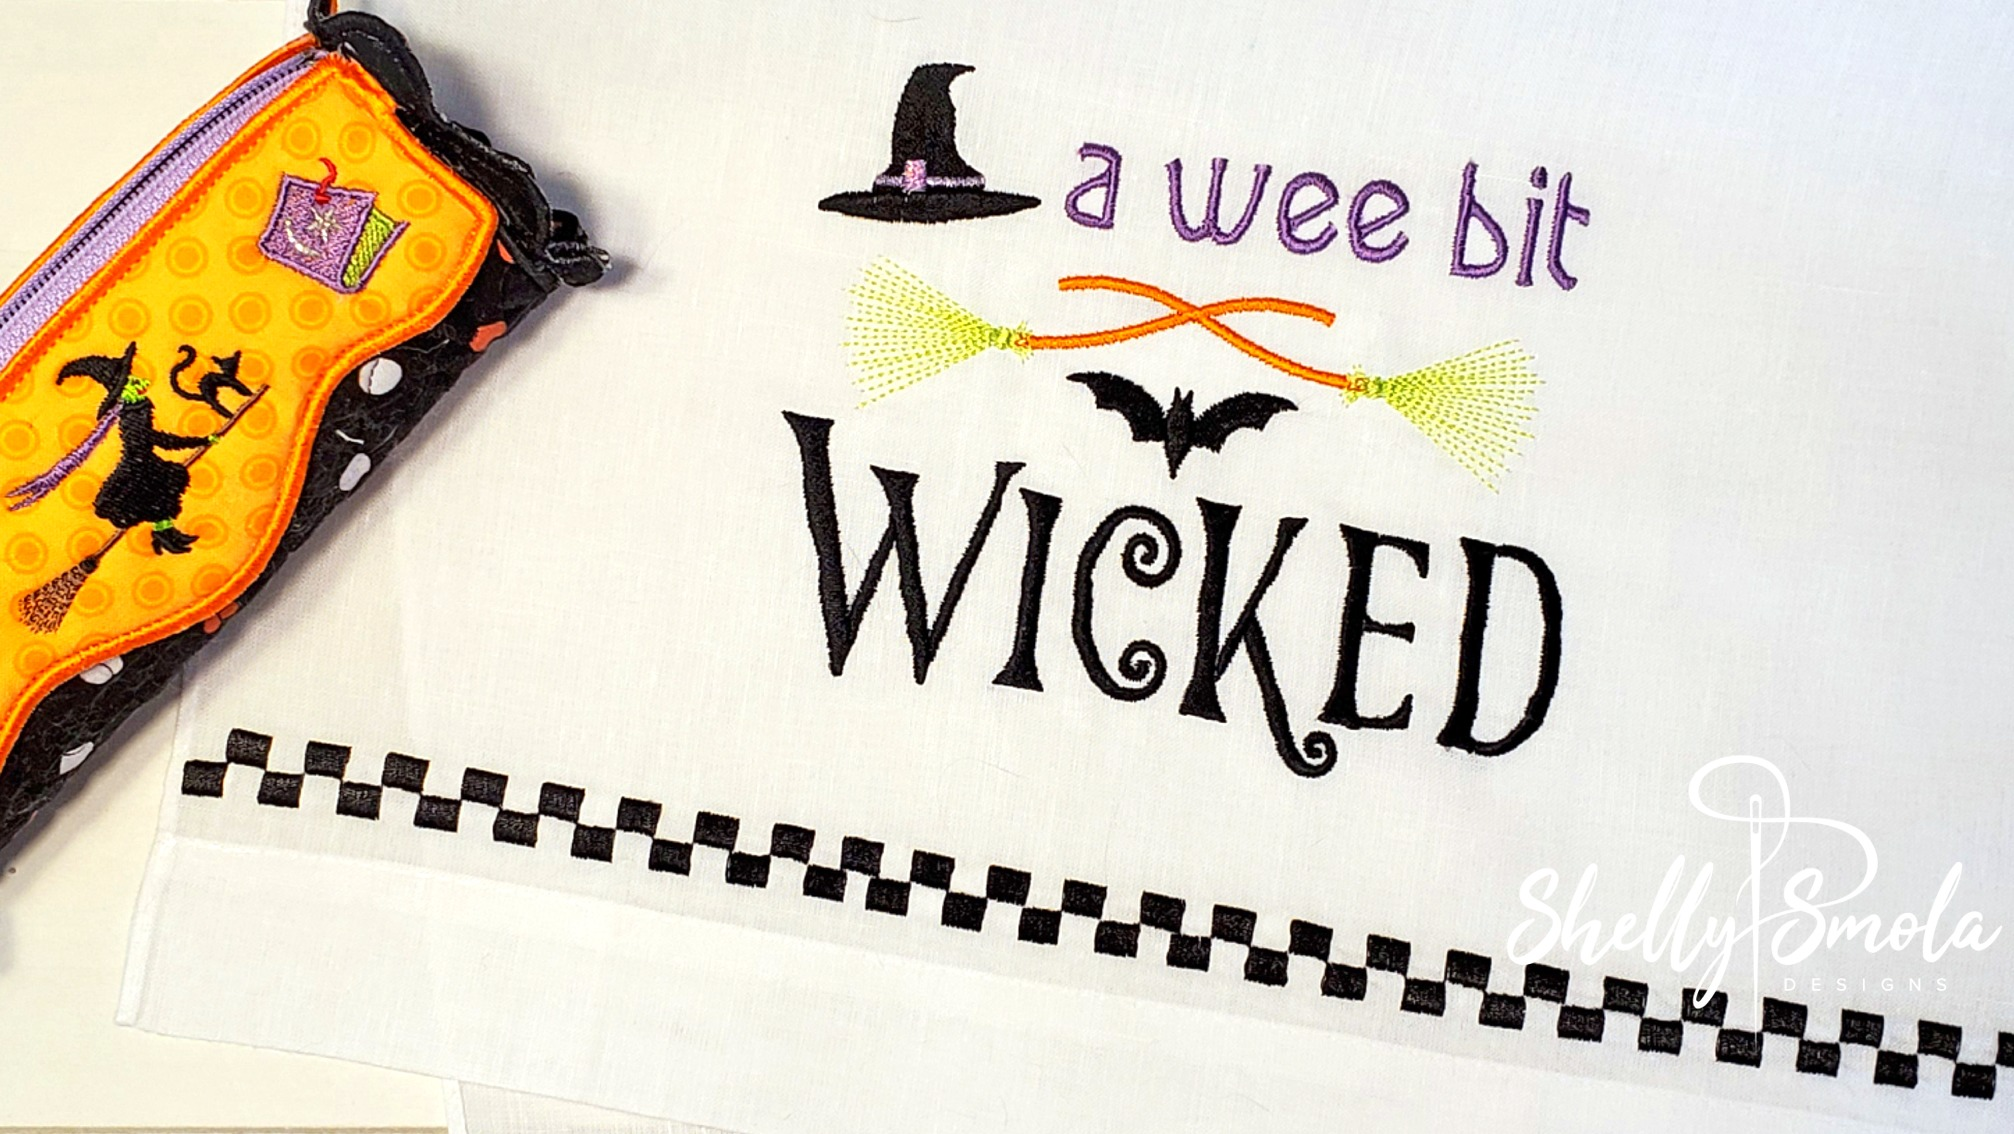 Wicked Halloween Design by Shelly Smola